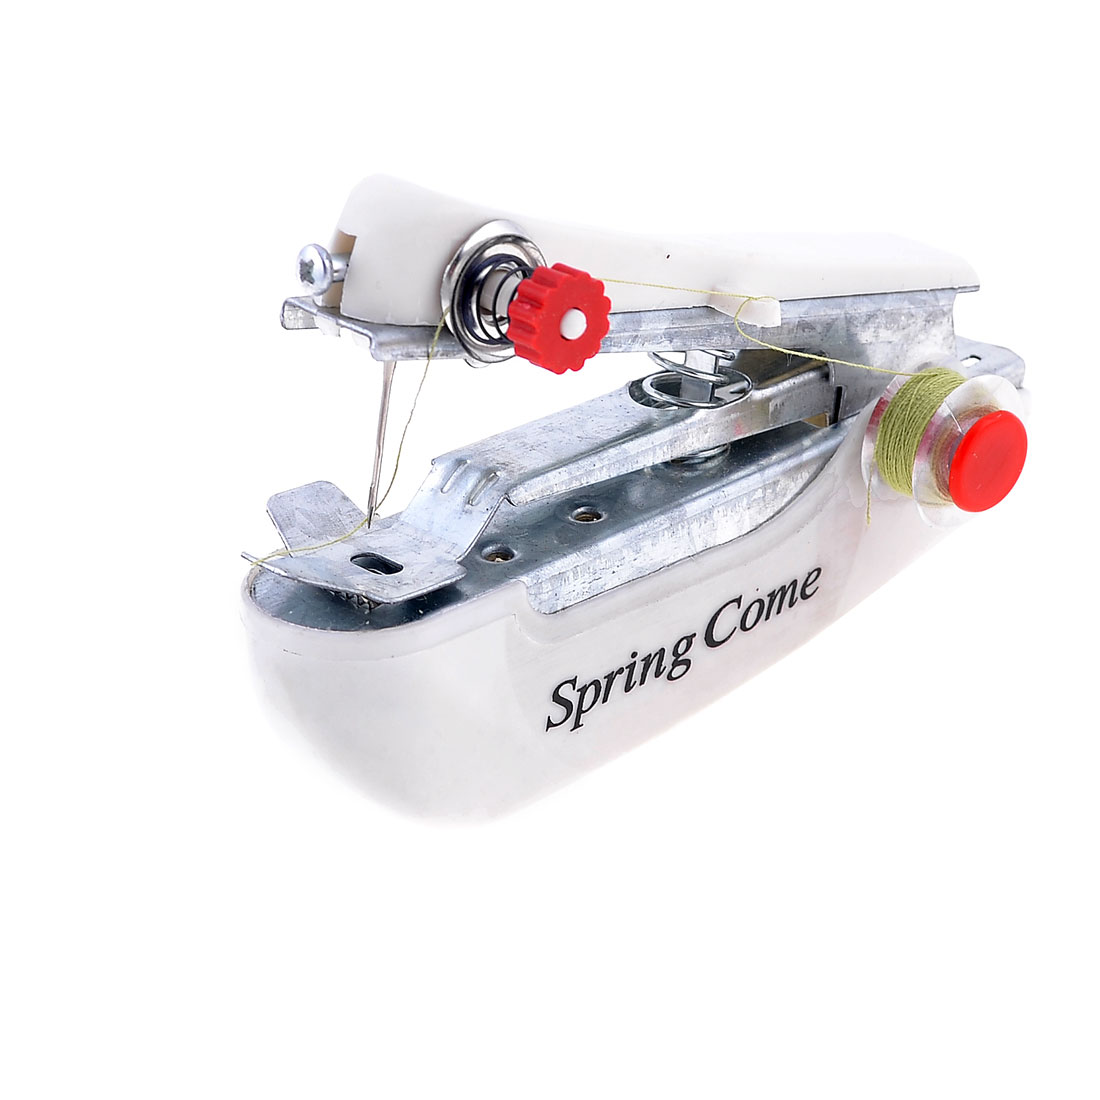 Family White Coated Handy Stitching Portable Handheld Sewing Machine